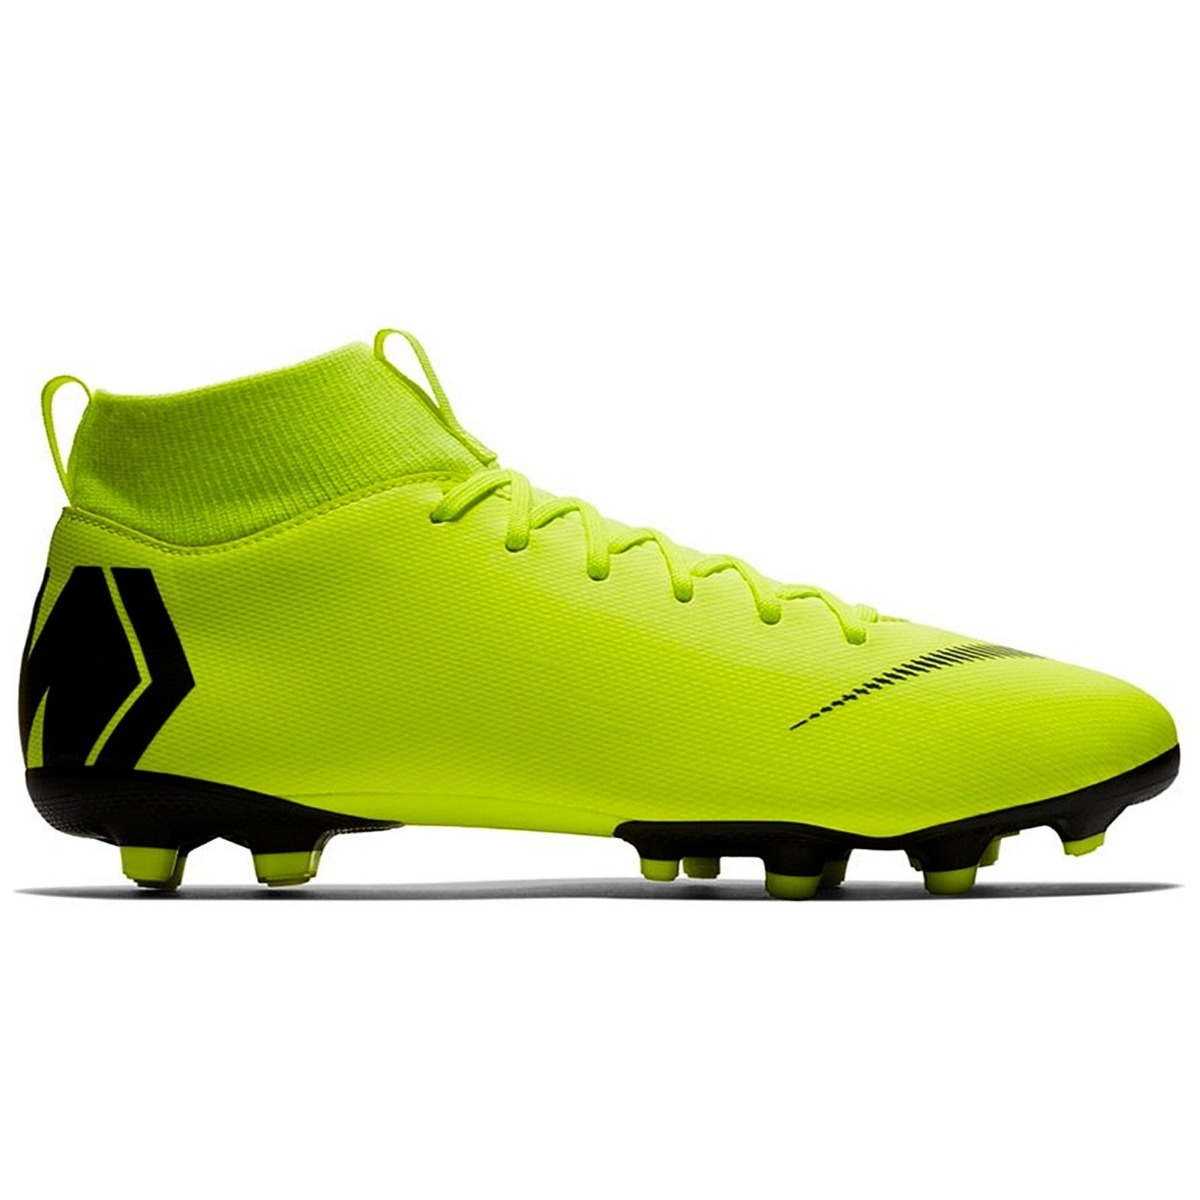 best service 5abb1 d1415 botas nike mercurial superfly verde neon taquete a meses. Cargando zoom.